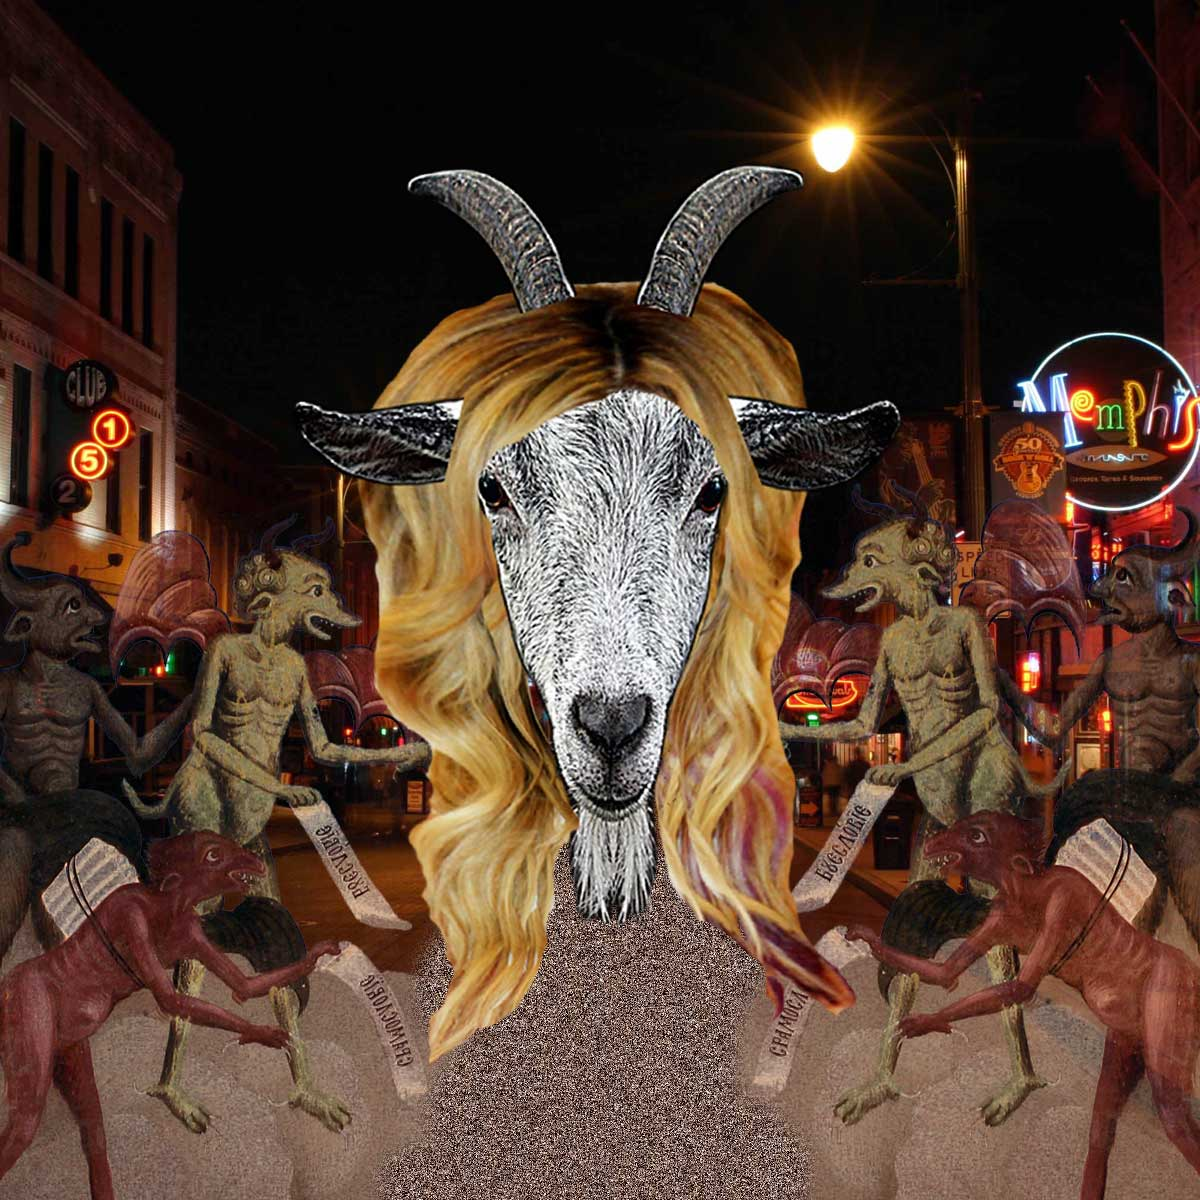 And then it got weird: Satanic Goats and Demonic Hair Weaves